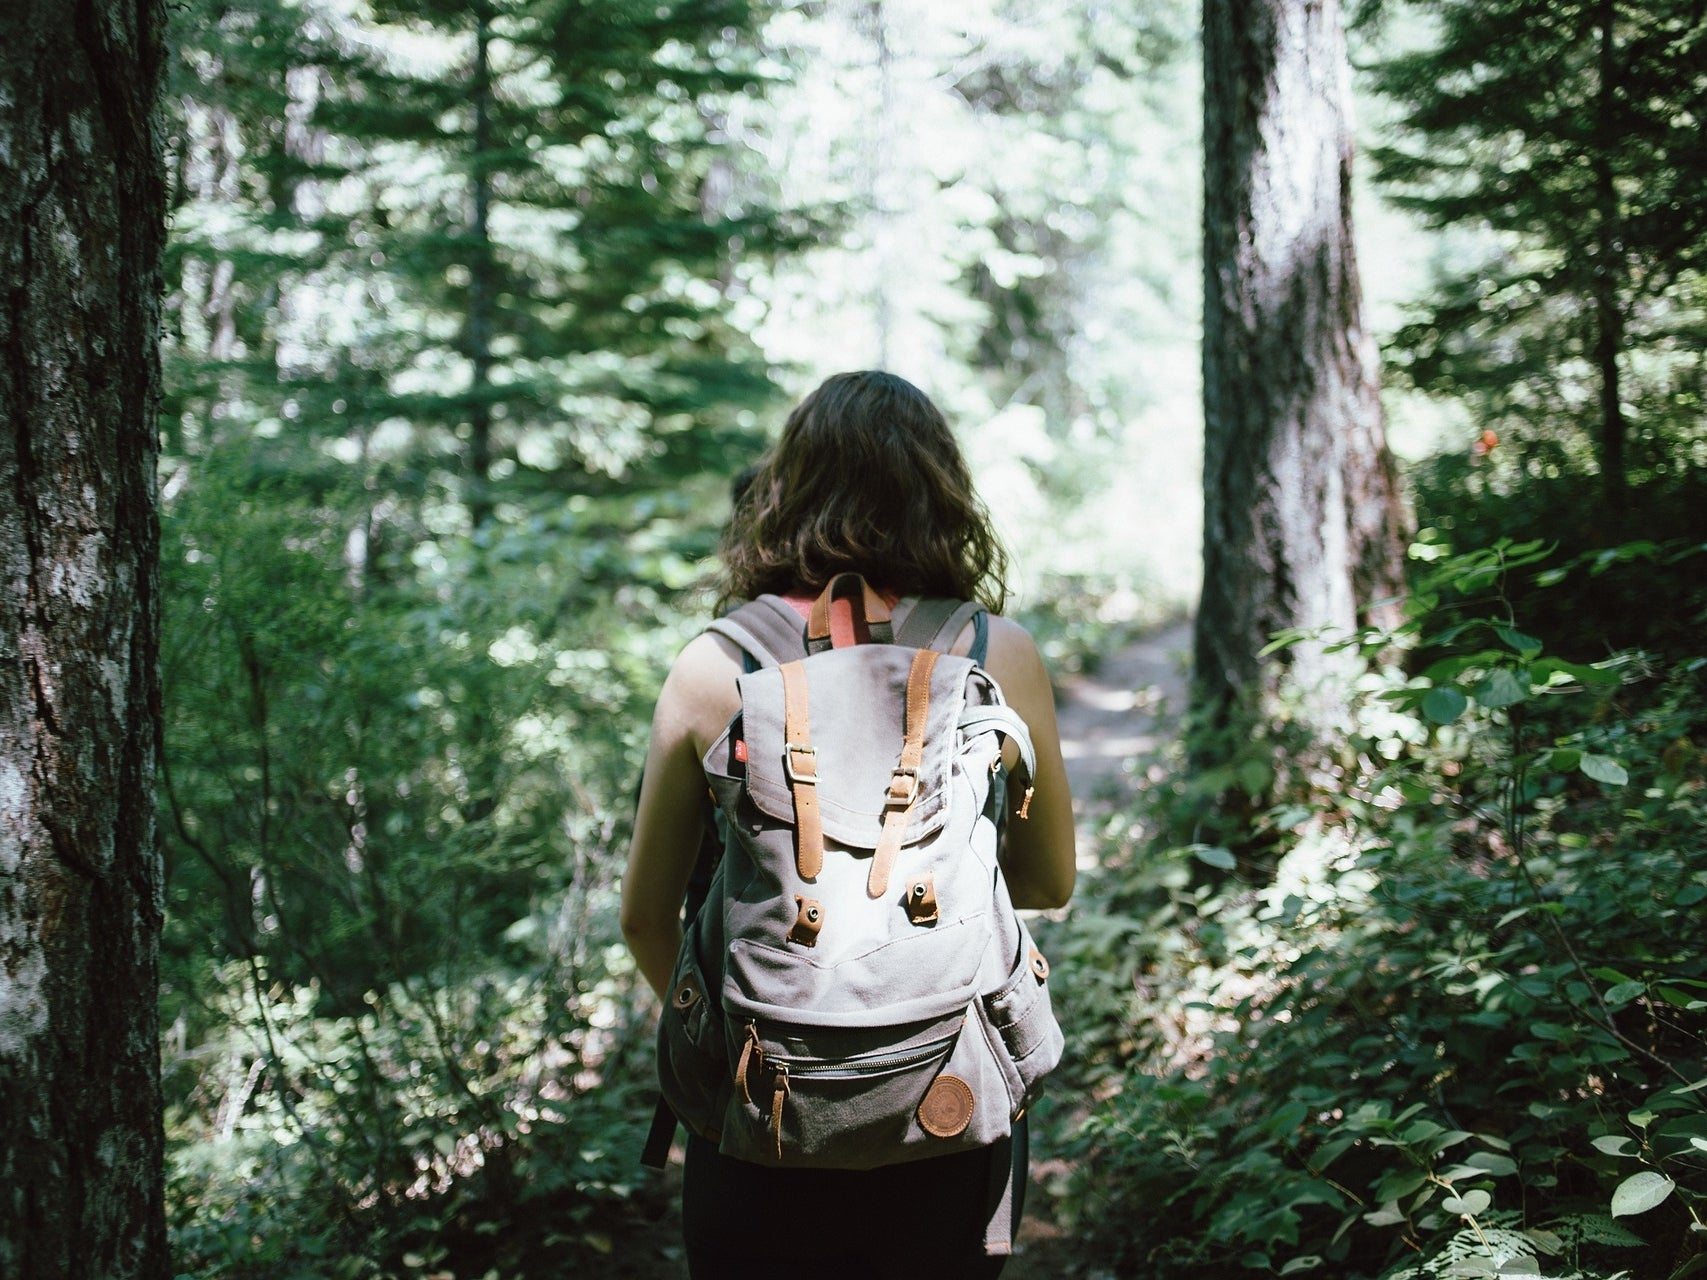 Nature walks can trigger feelings of awe, but you can achieve the feeling inside, too.